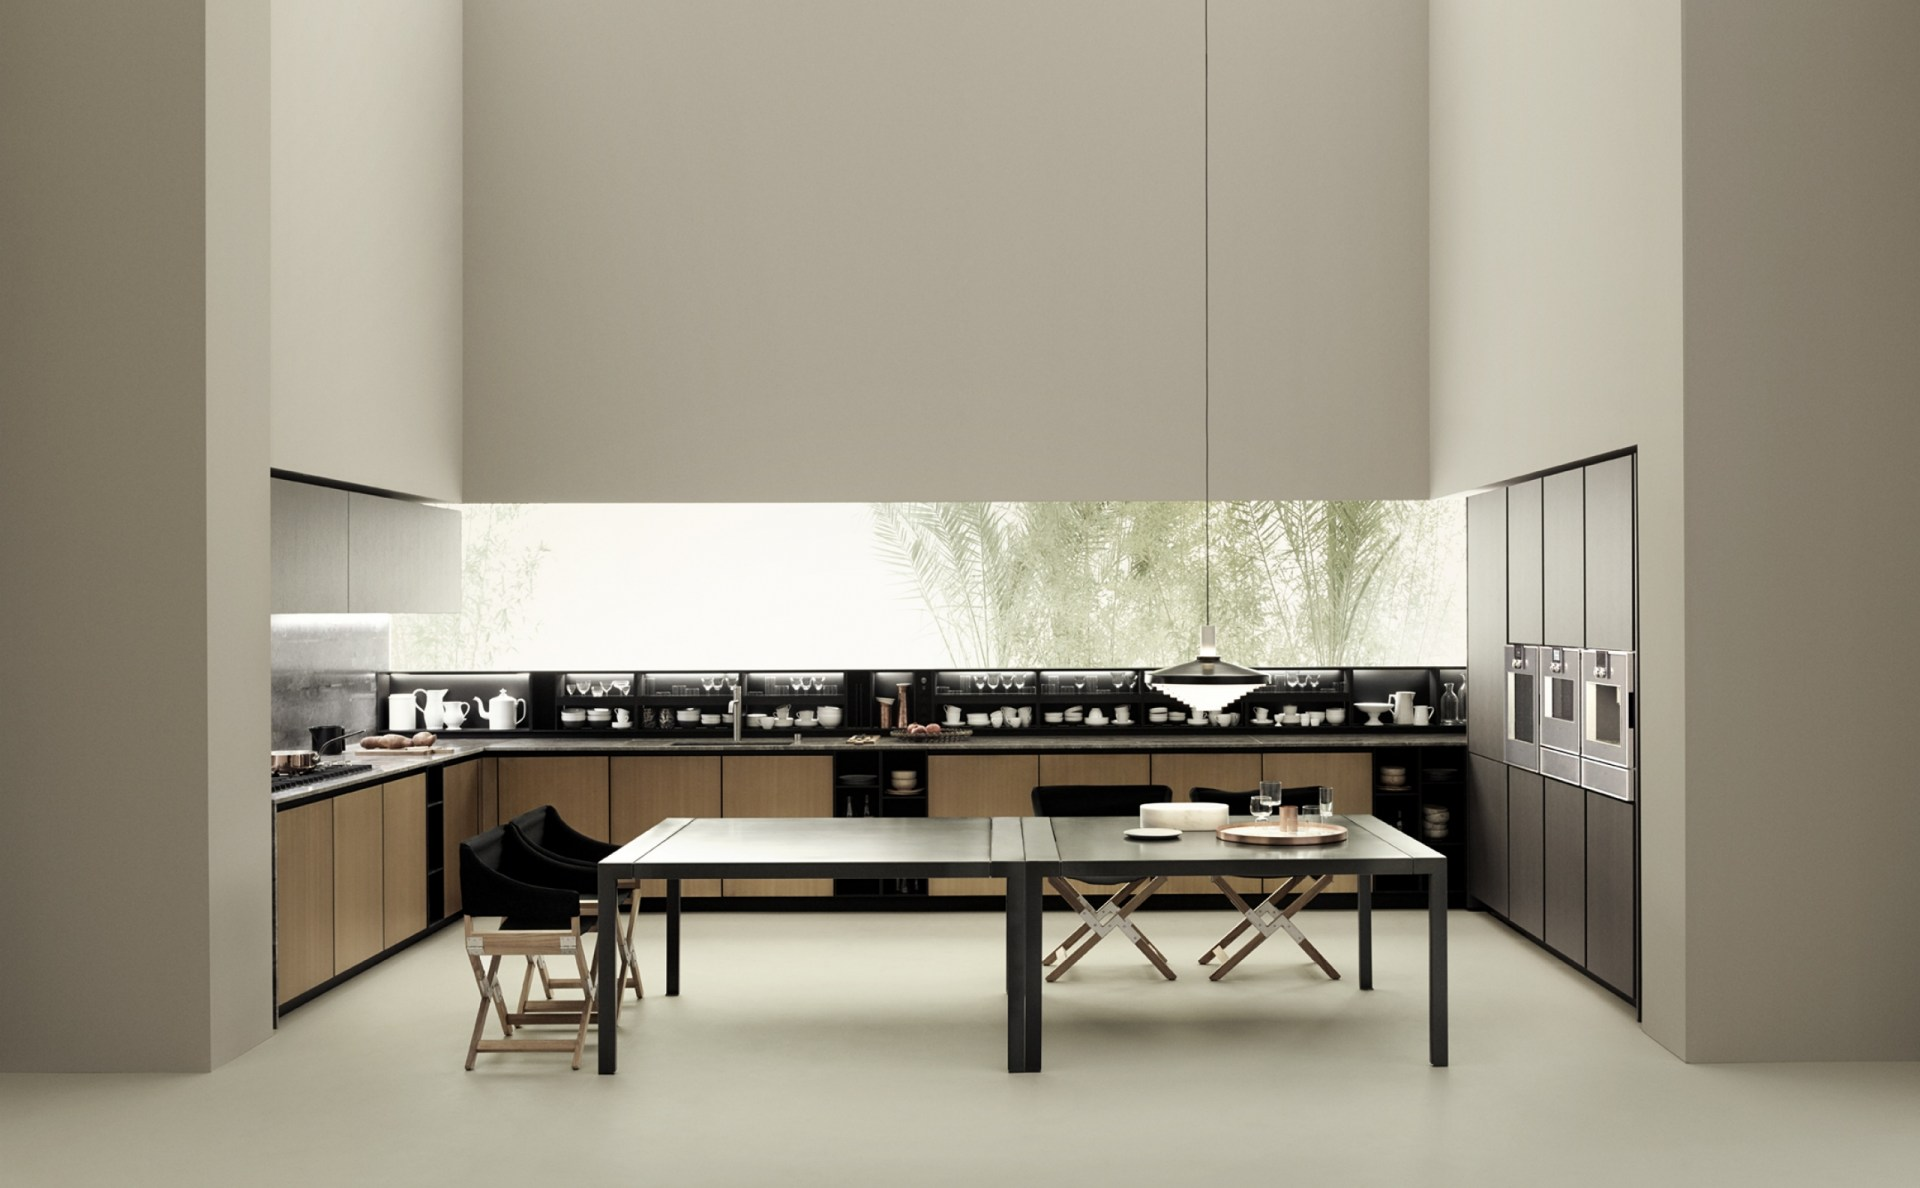 boffi_kitchenology_076.jpg